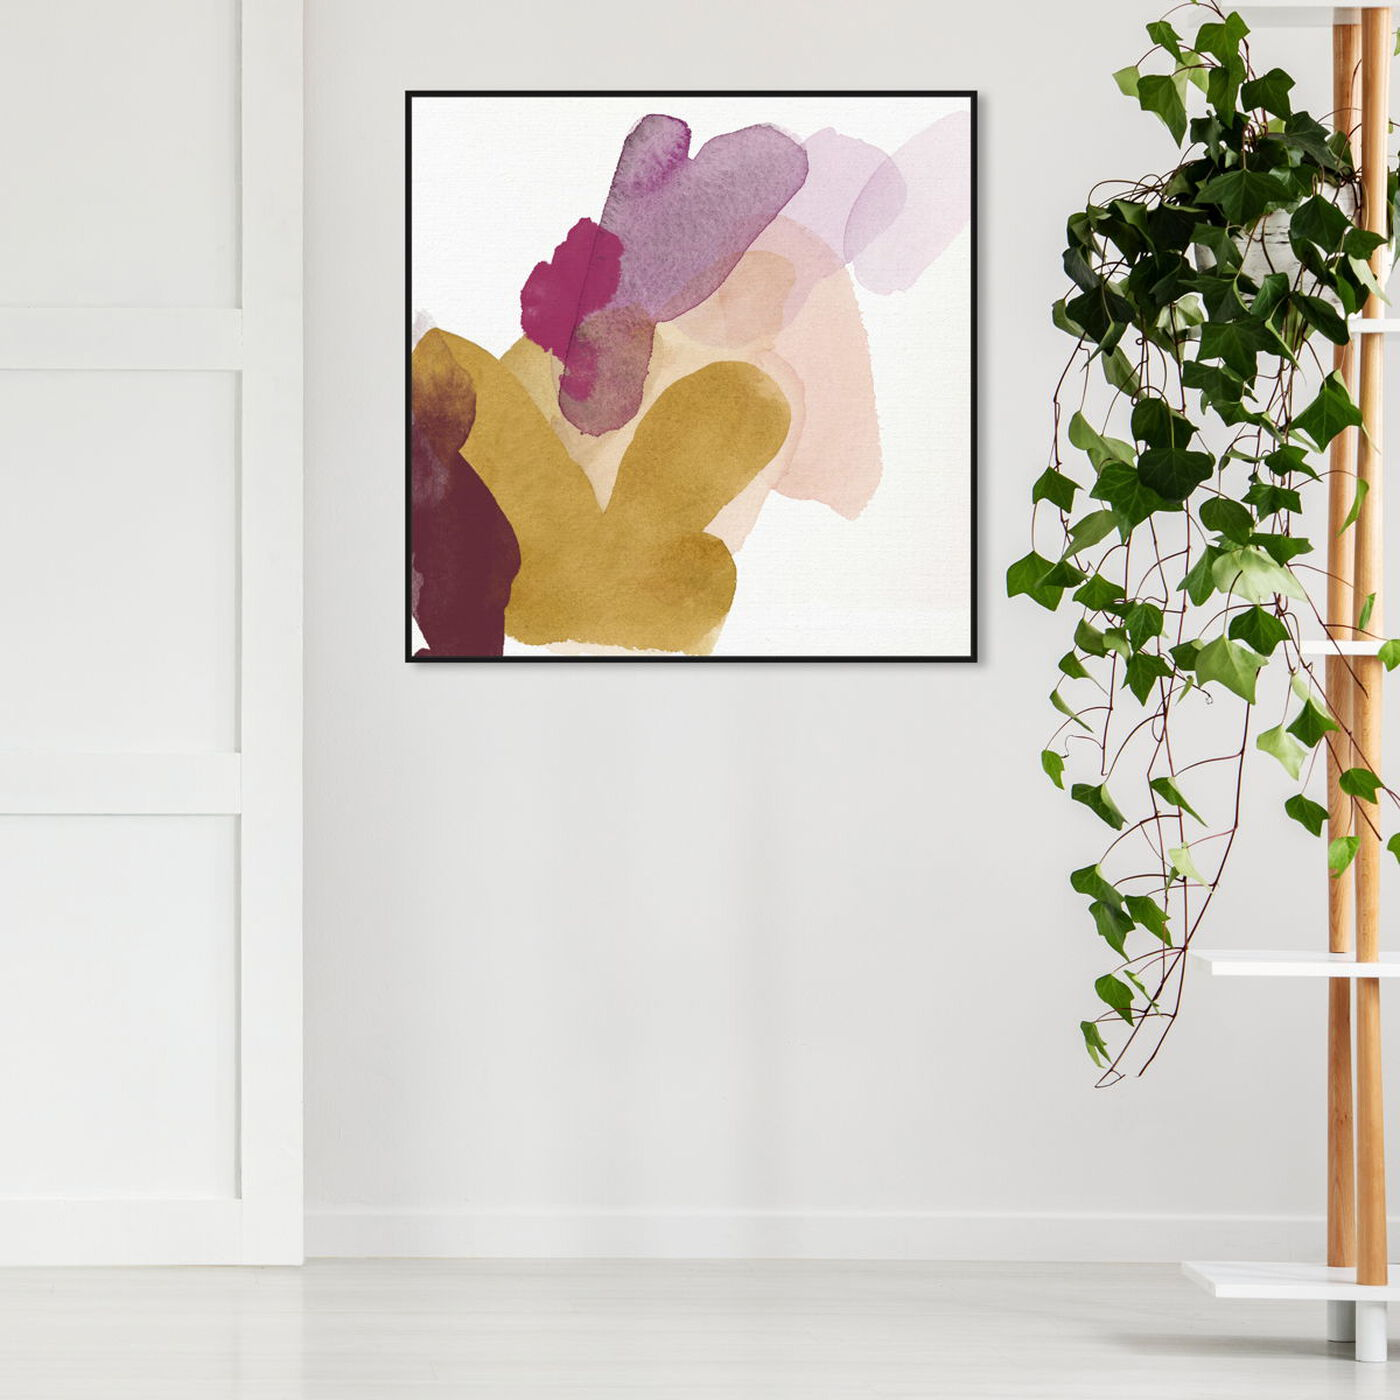 Hanging view of Throwback Strokes featuring abstract and watercolor art.